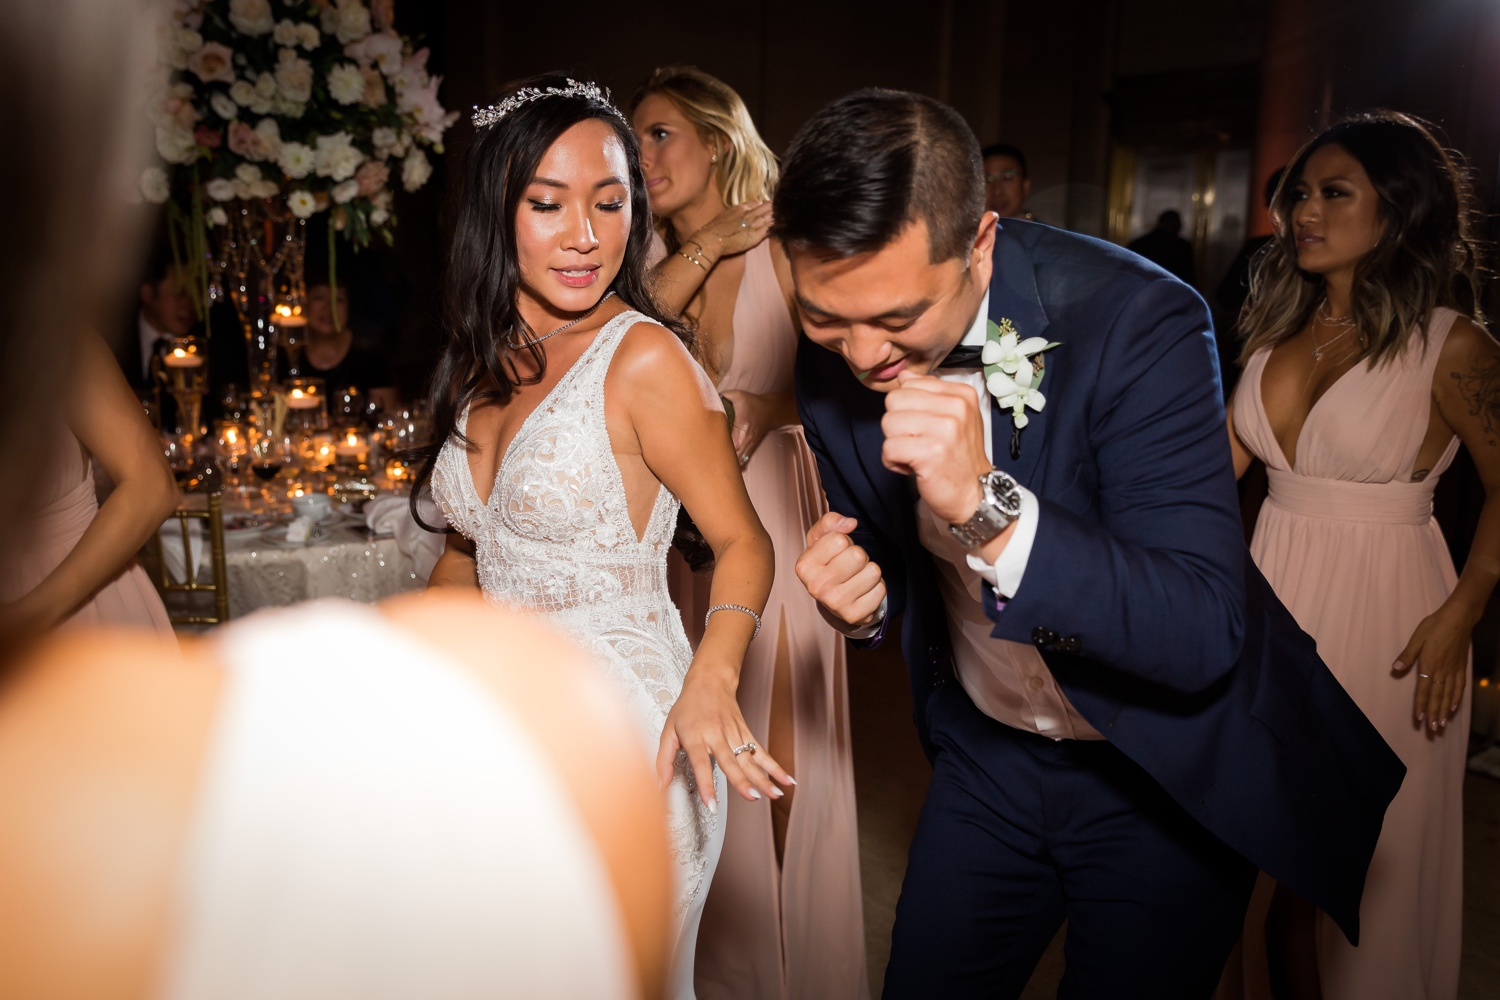 A bride dancing with a groomsman during